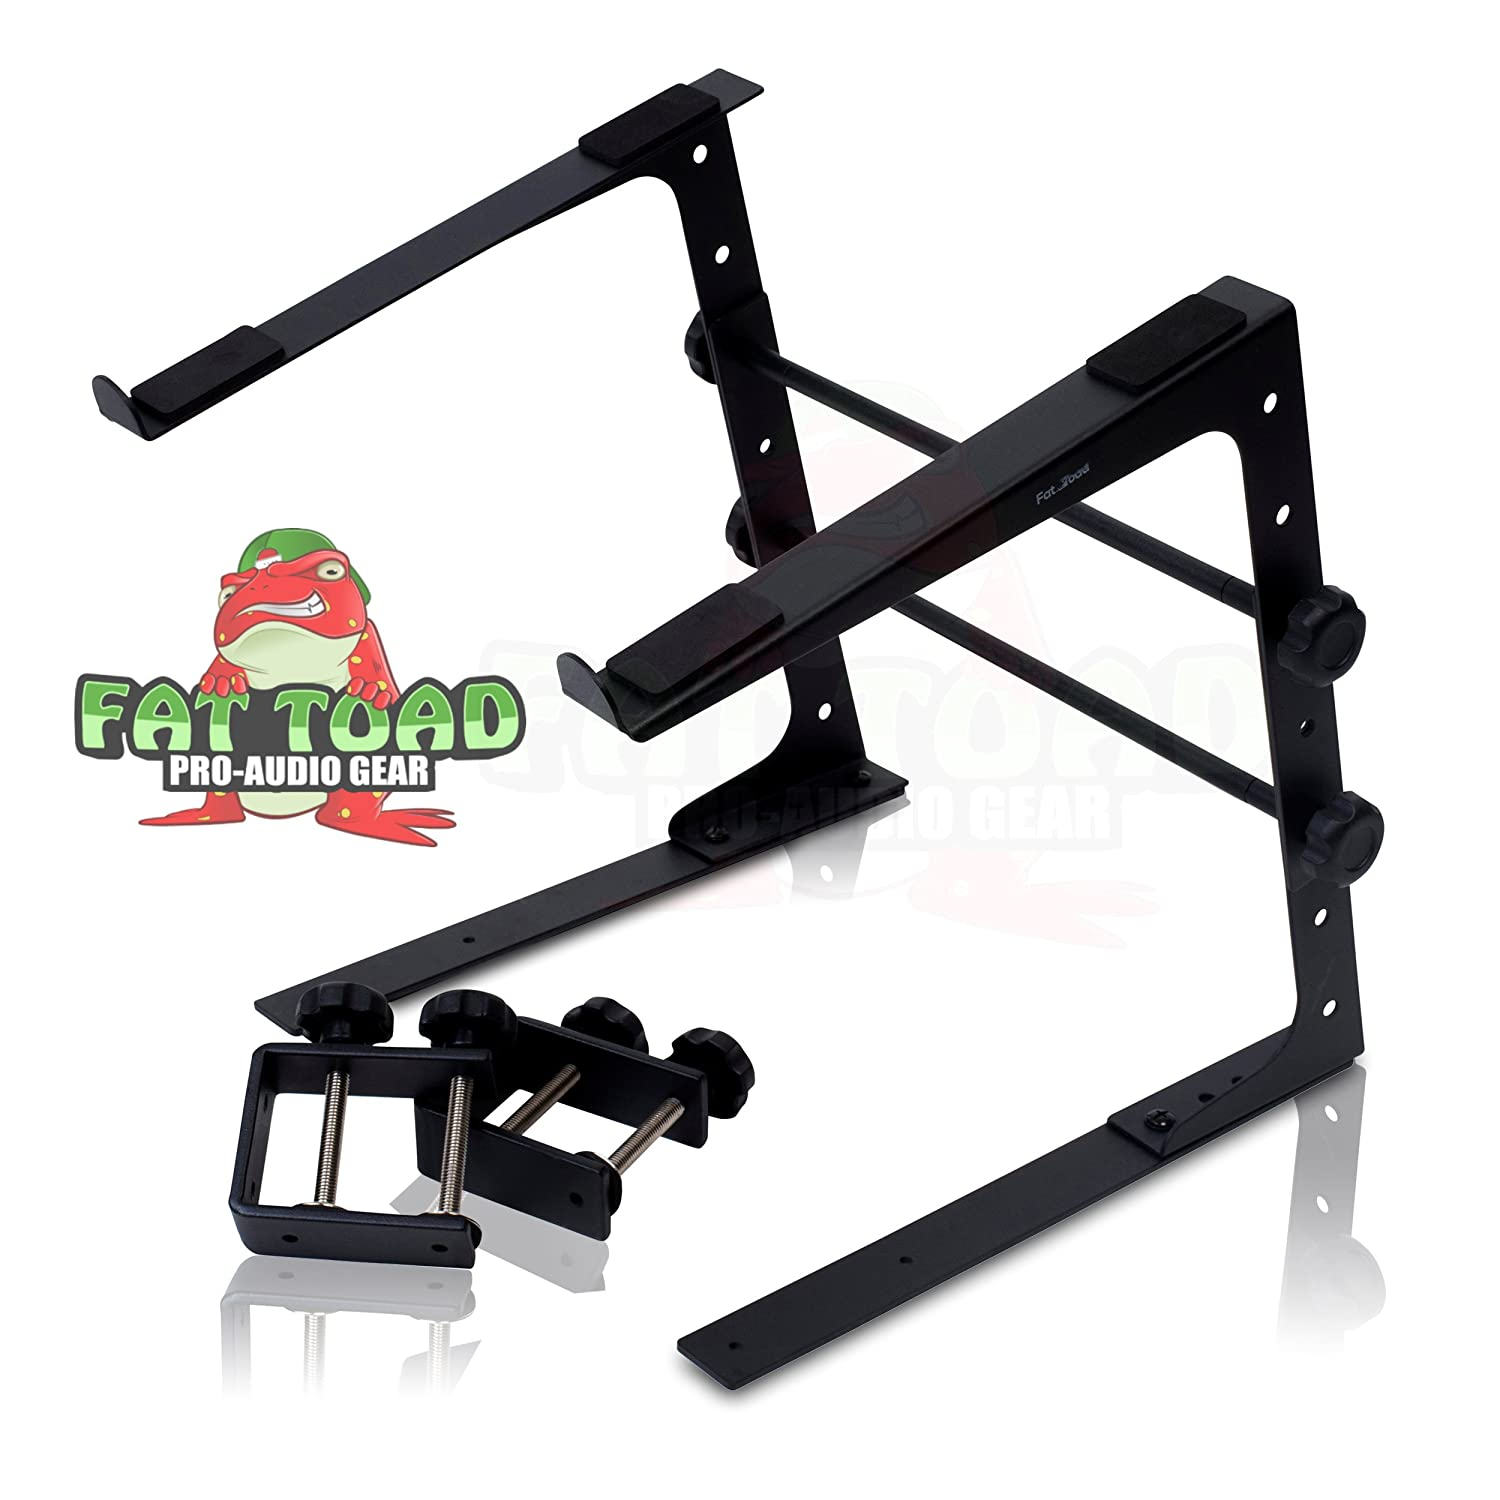 DJ Laptop Computer Stand by Fat Toad | Portable PC Table with Durable Rack Mount Clamp Case L Gear Bracket|Mobile Disc Jockey Equipment|For Pro-Audio Controller Mixer Studio|Fits All Laptop Sizes SM-LS01